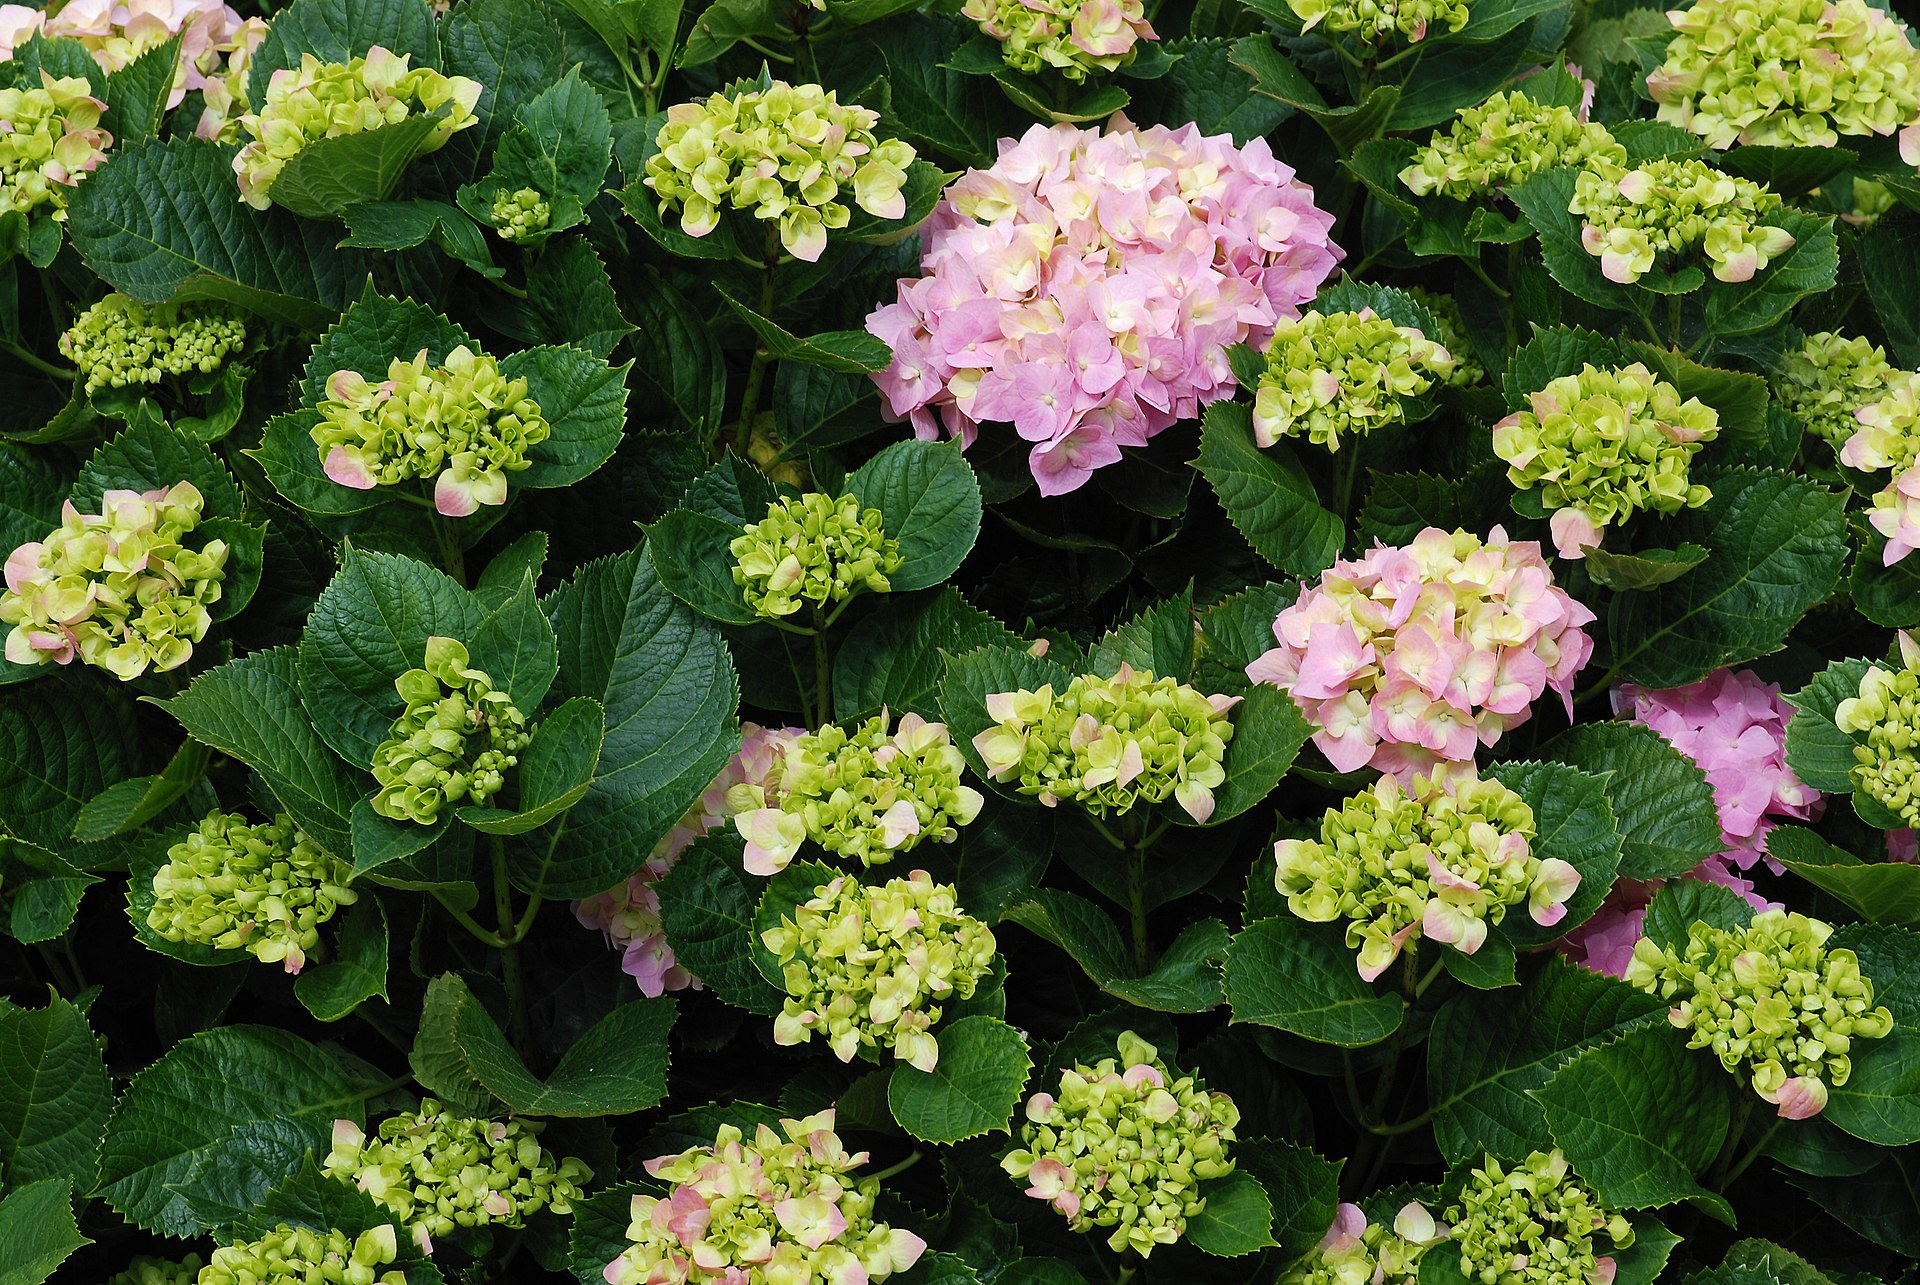 hydrangea macrophylla wikipedia. Black Bedroom Furniture Sets. Home Design Ideas